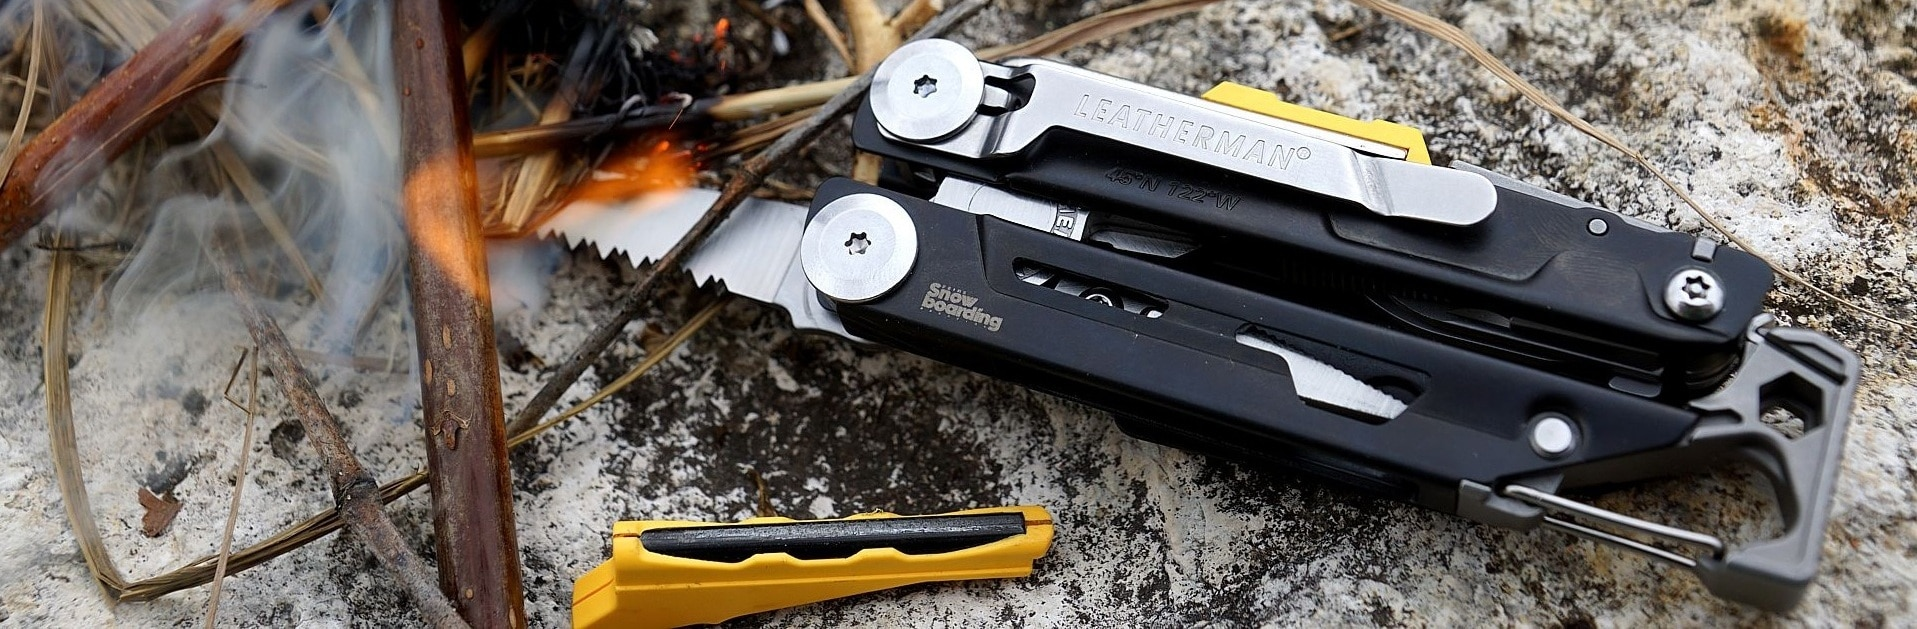 Best Survival Multi-tool for 2020 - Reviews, Comparison and Ideas 3